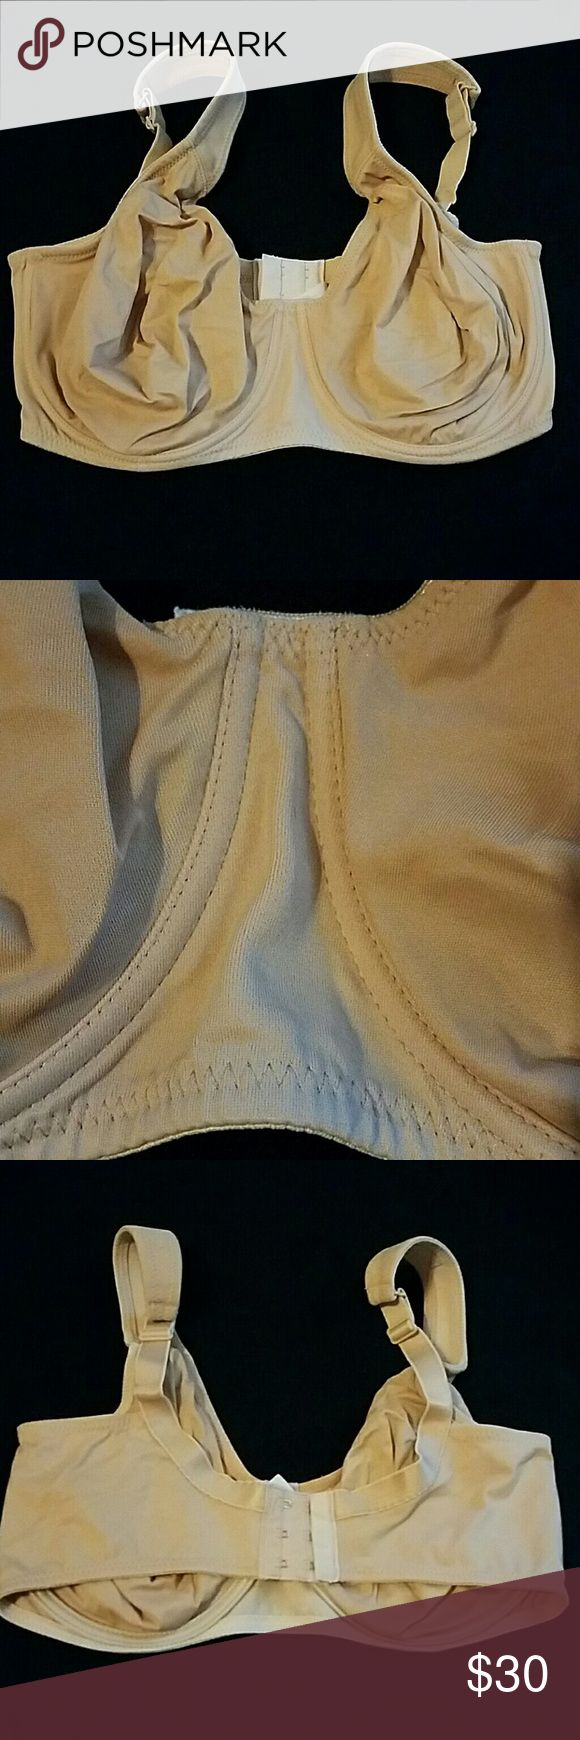 36G Rosa Faia Double Lined Bra Nude soft cup 36G.  Tag is faded but otherwise in great shape! Rosa Faia Intimates & Sleepwear Bras